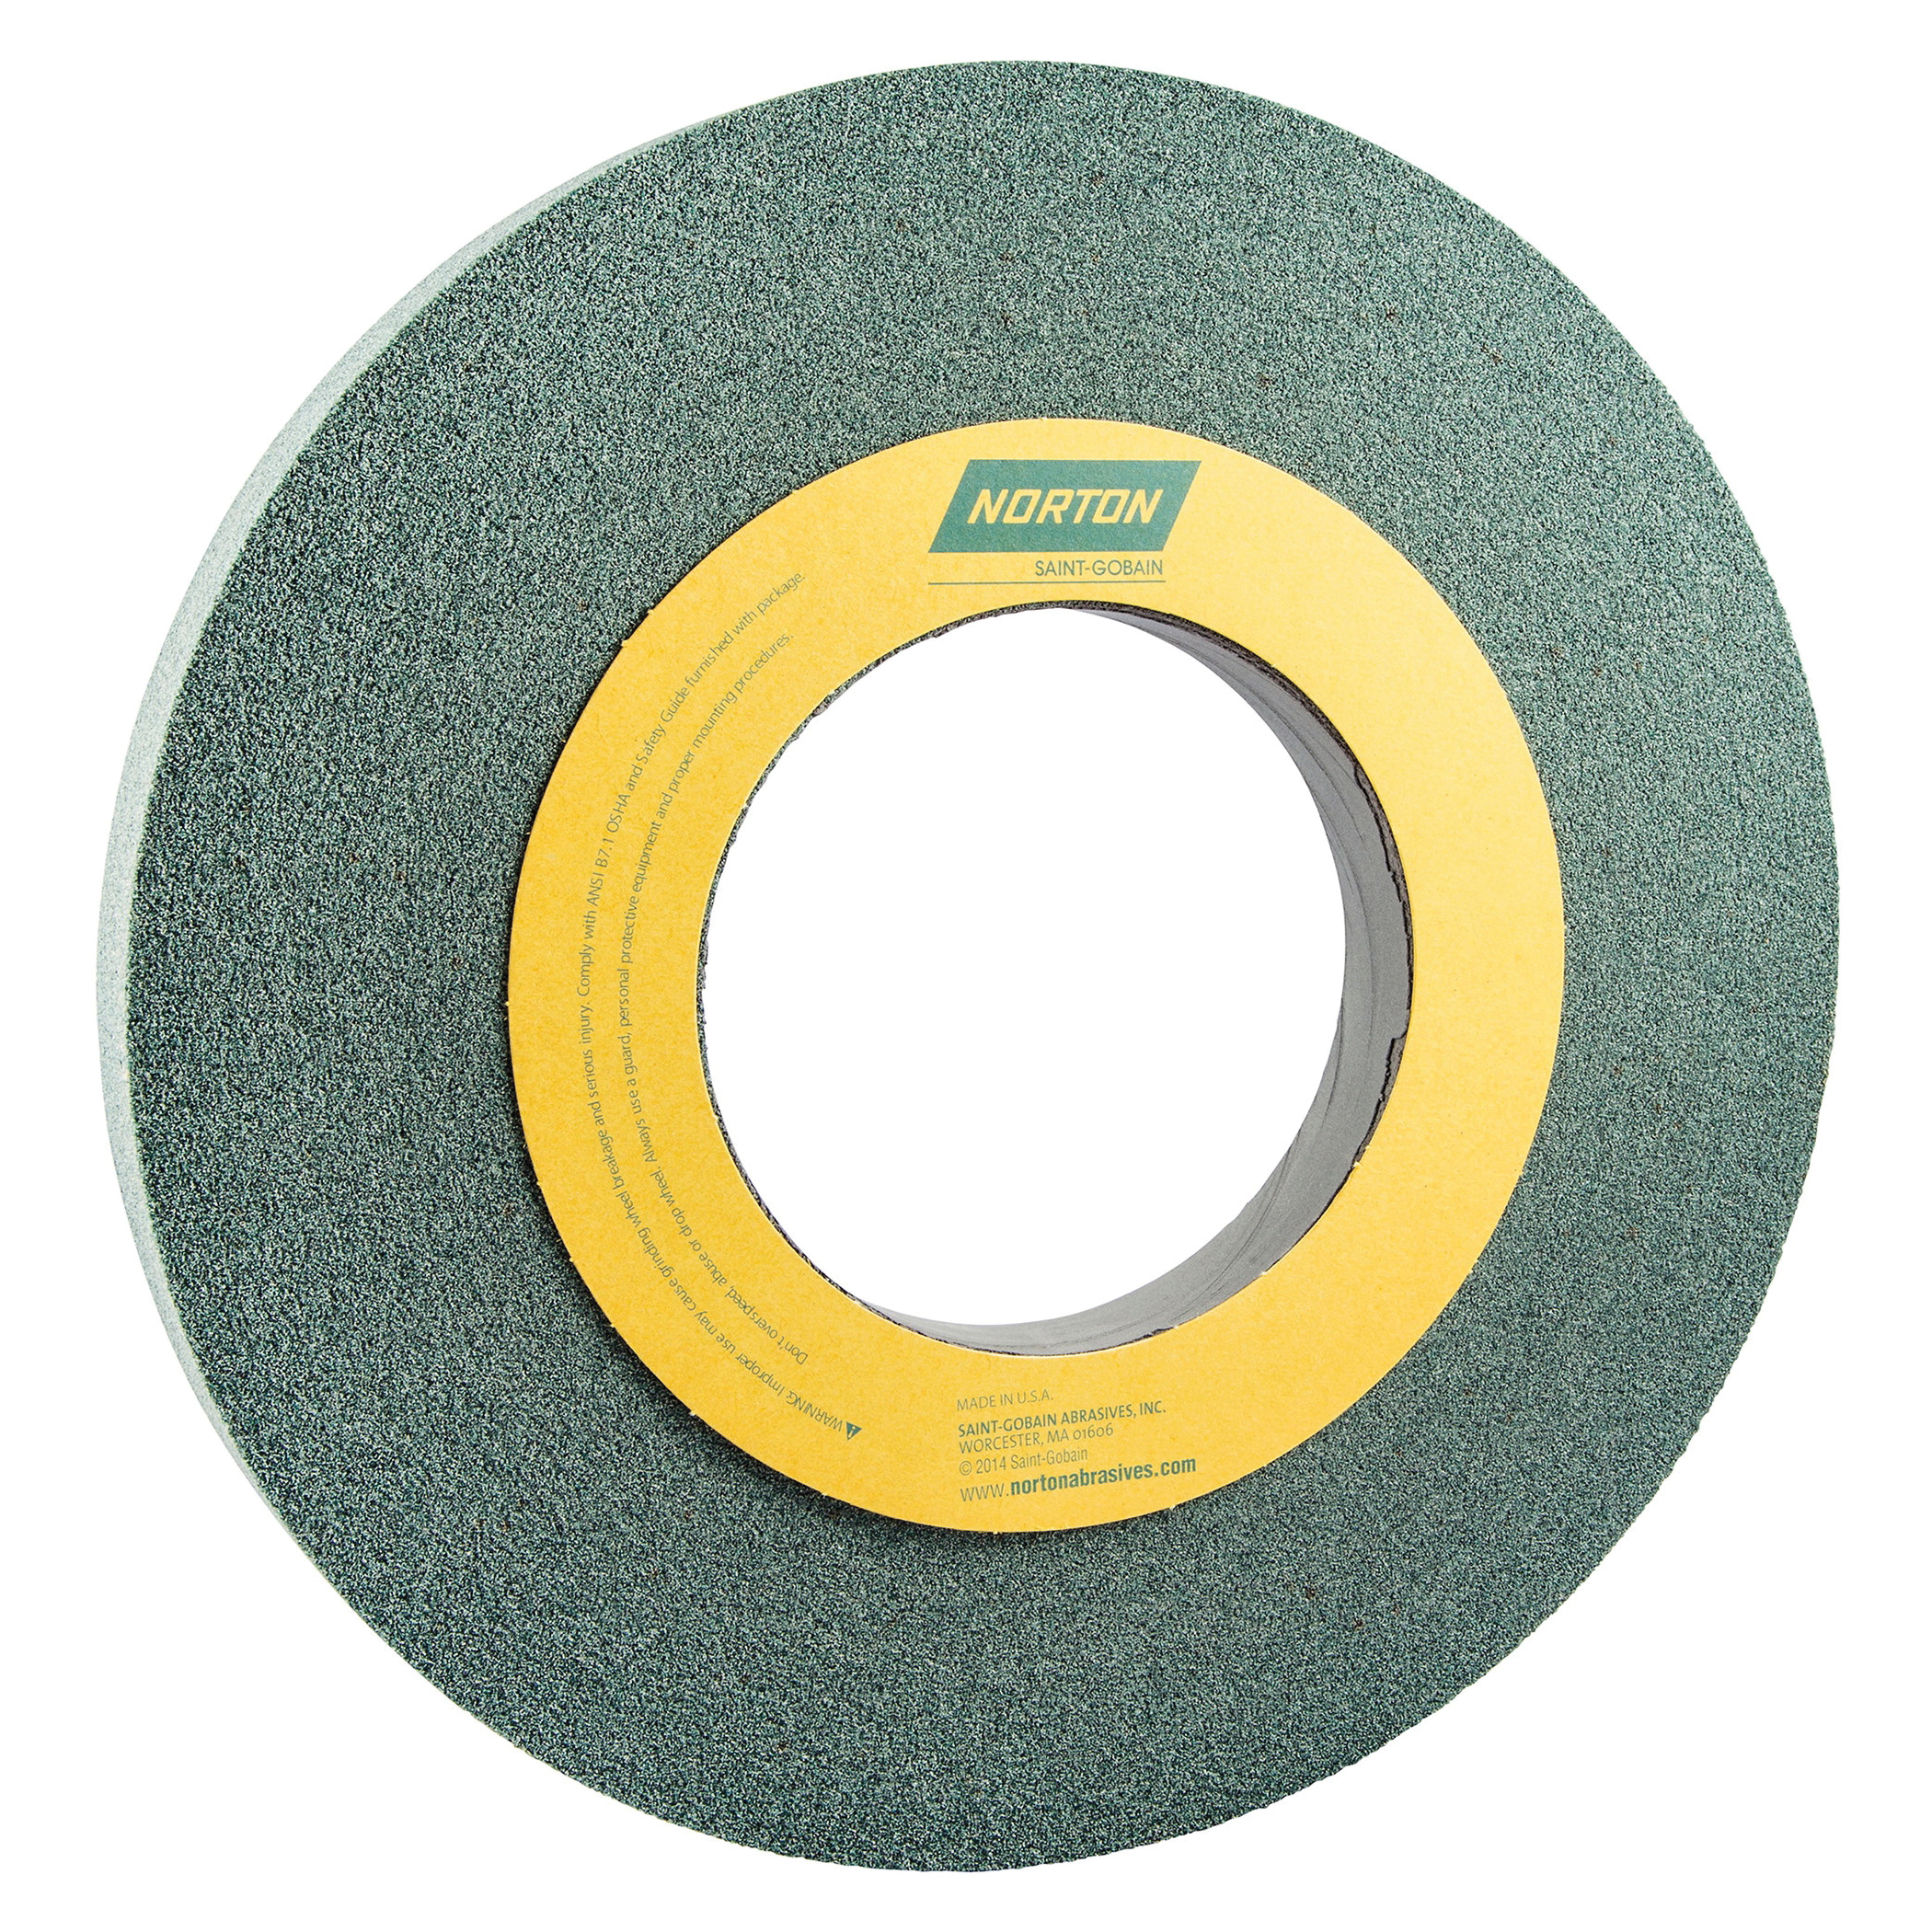 Norton® 66253262884 39C Straight Toolroom Wheel, 12 in Dia x 1 in THK, 5 in Center Hole, 60 Grit, Silicon Carbide Abrasive